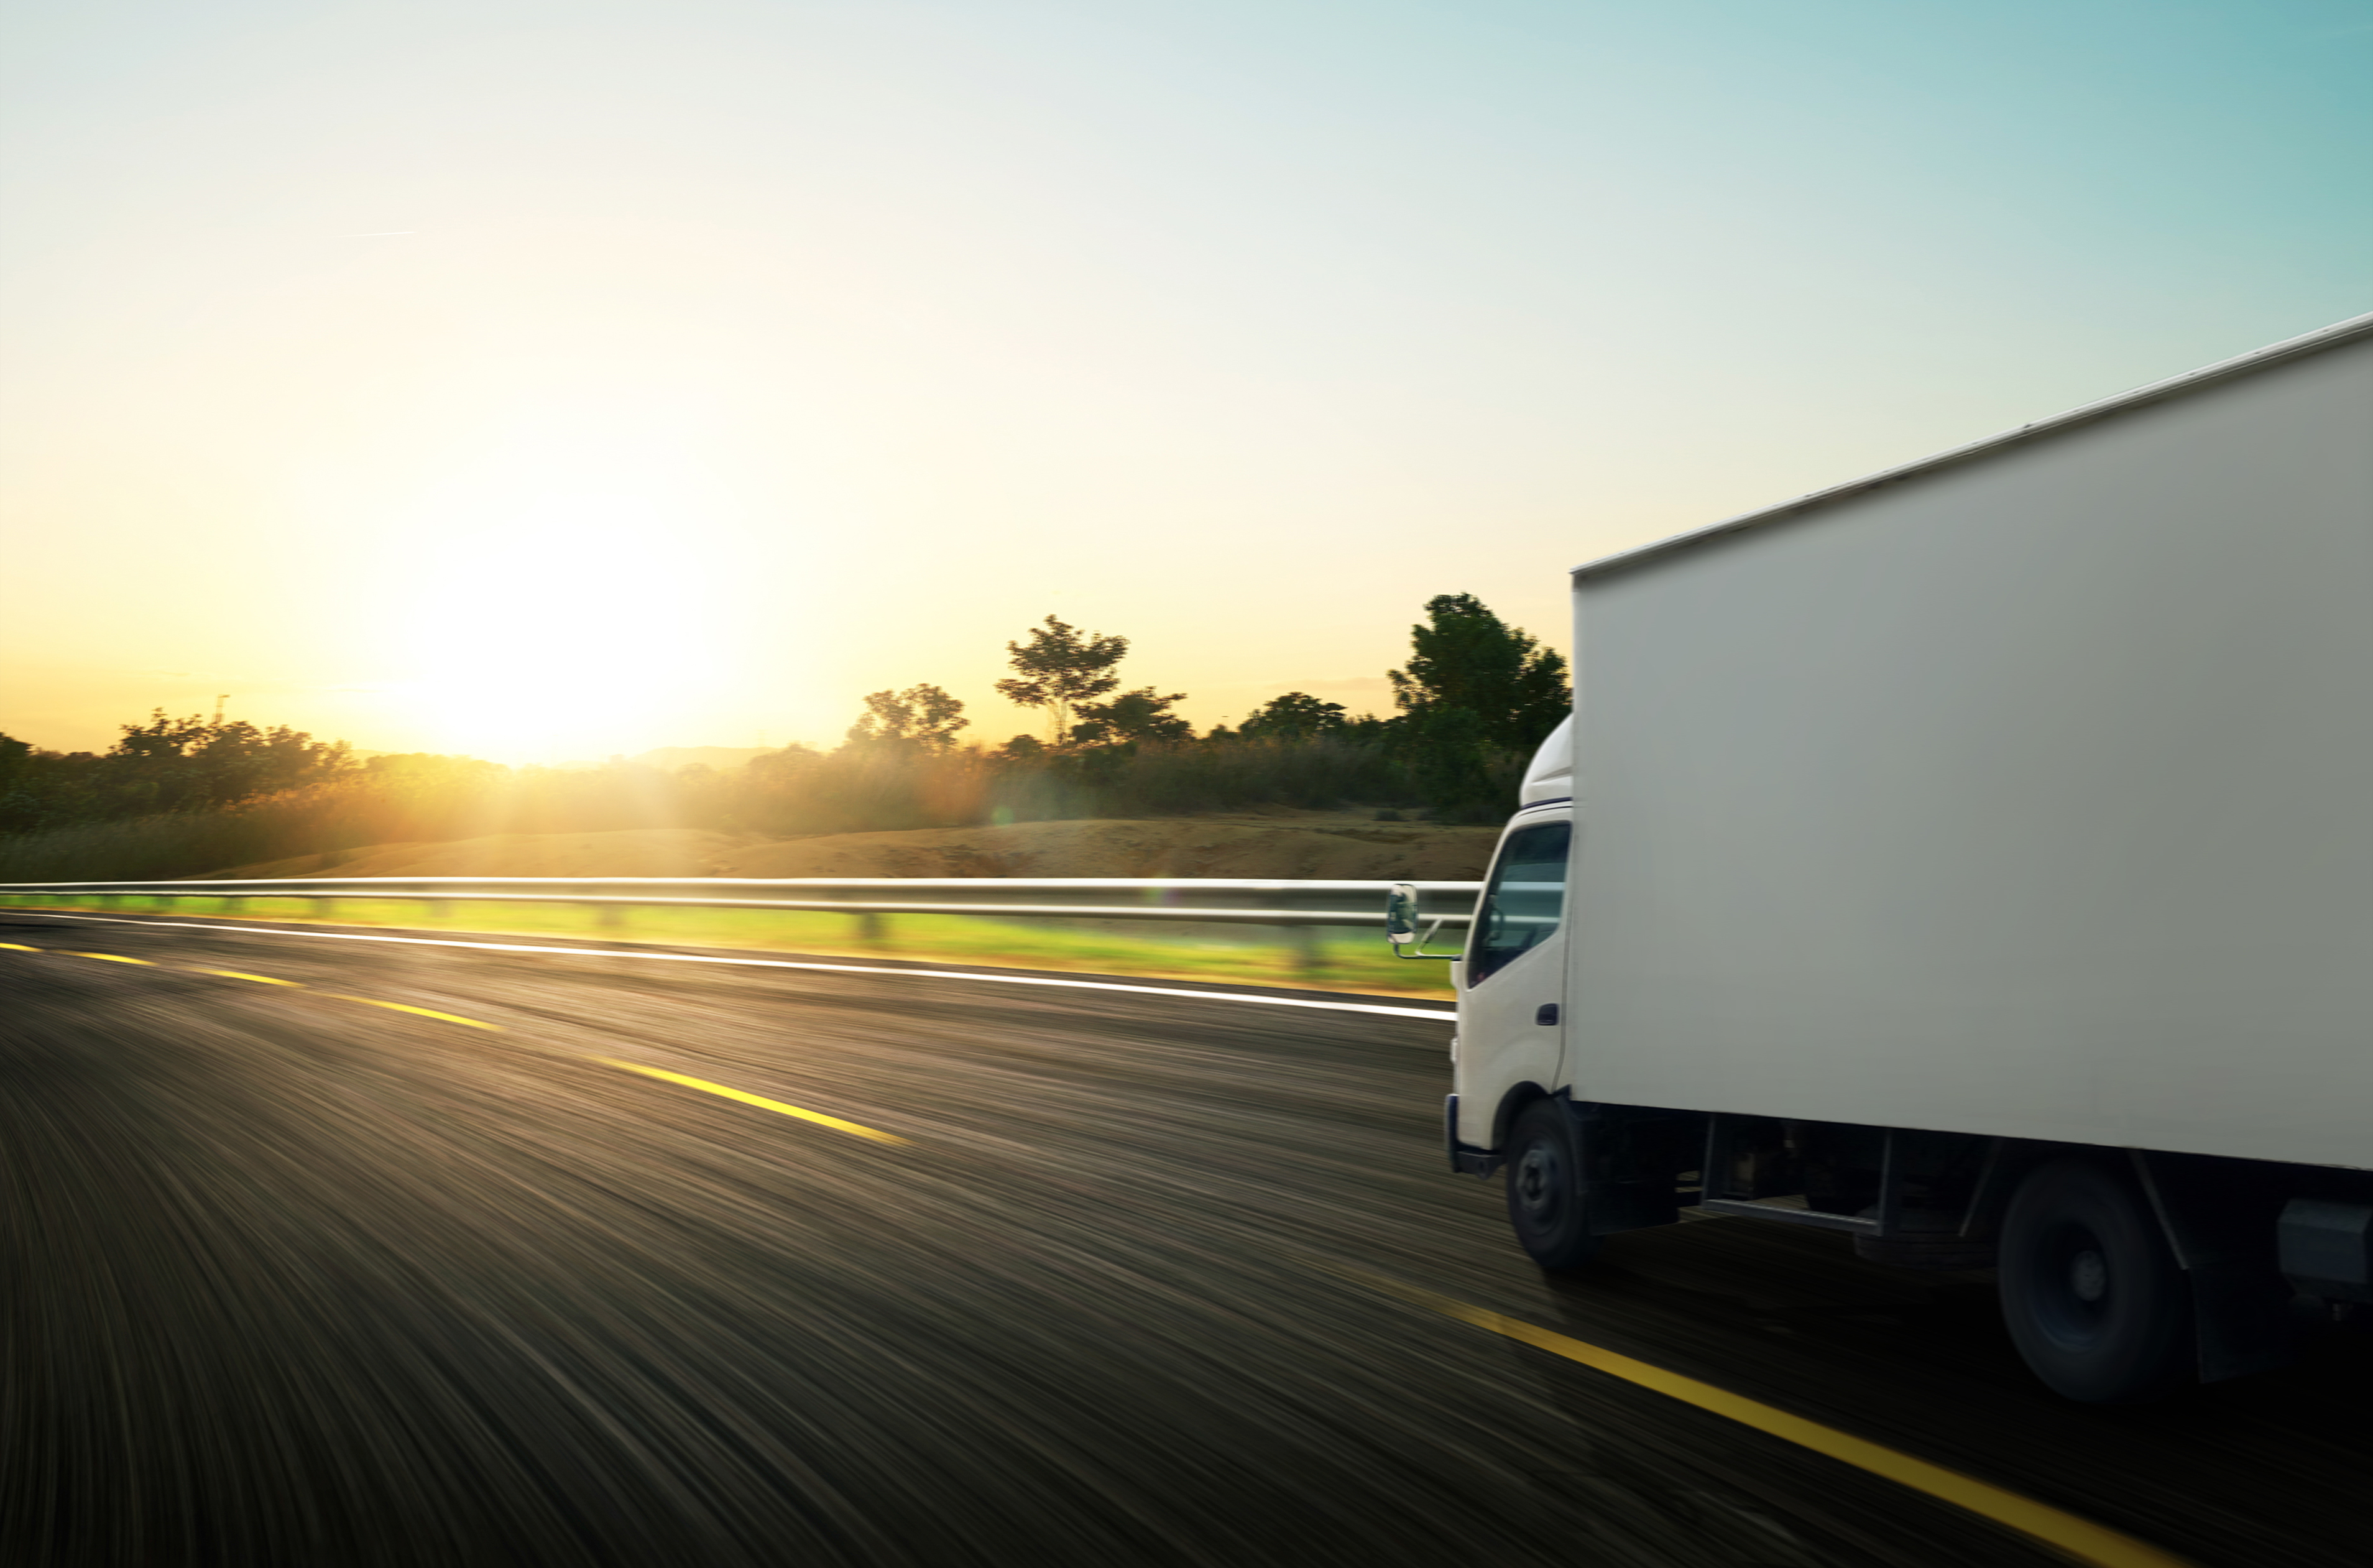 Transport Business with Growth Potential!